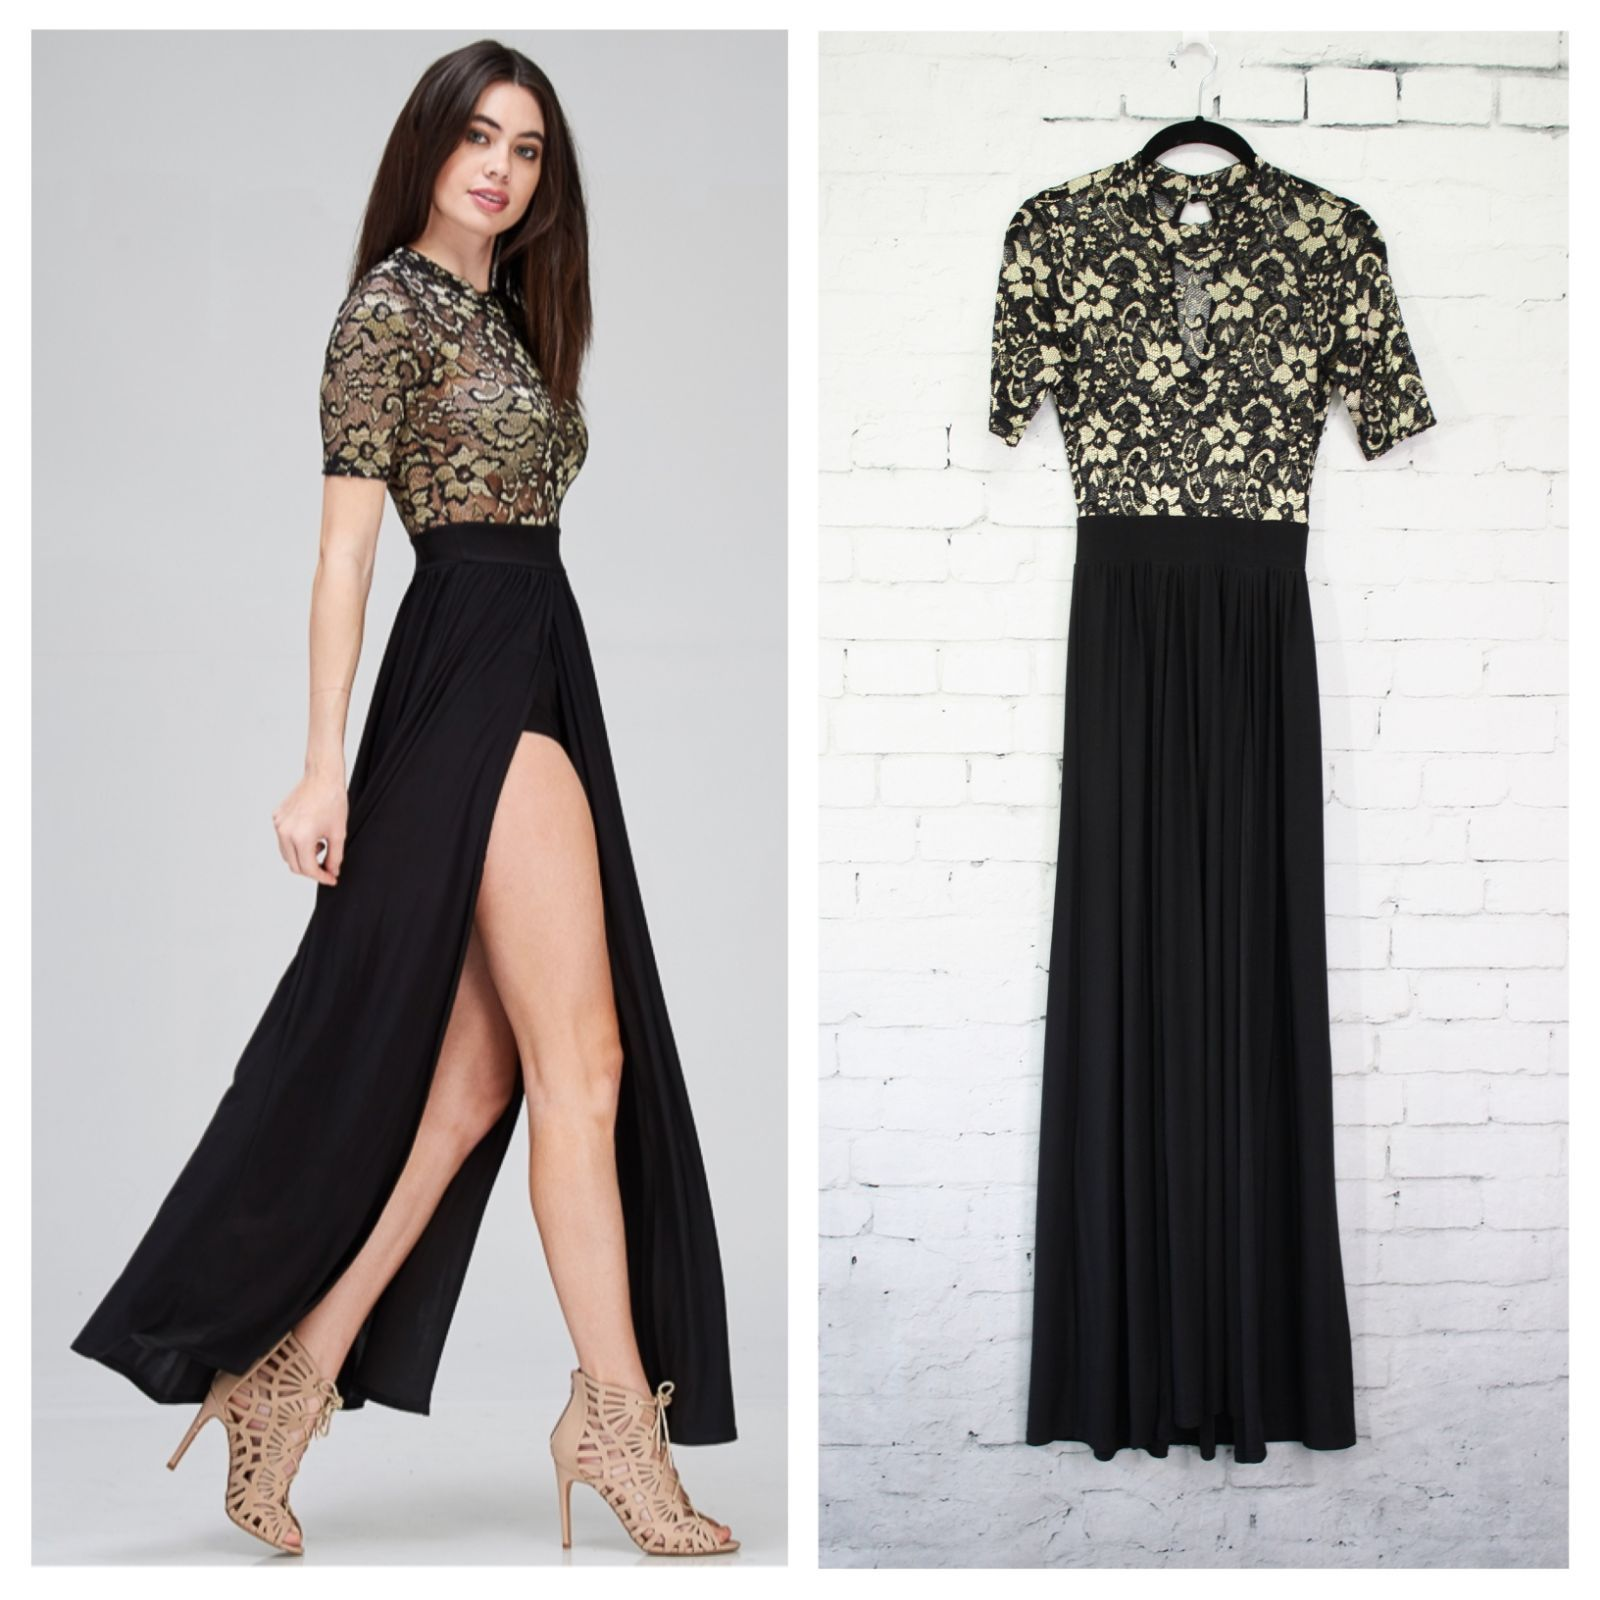 Dress has two long slits in front and attached shorts underneath